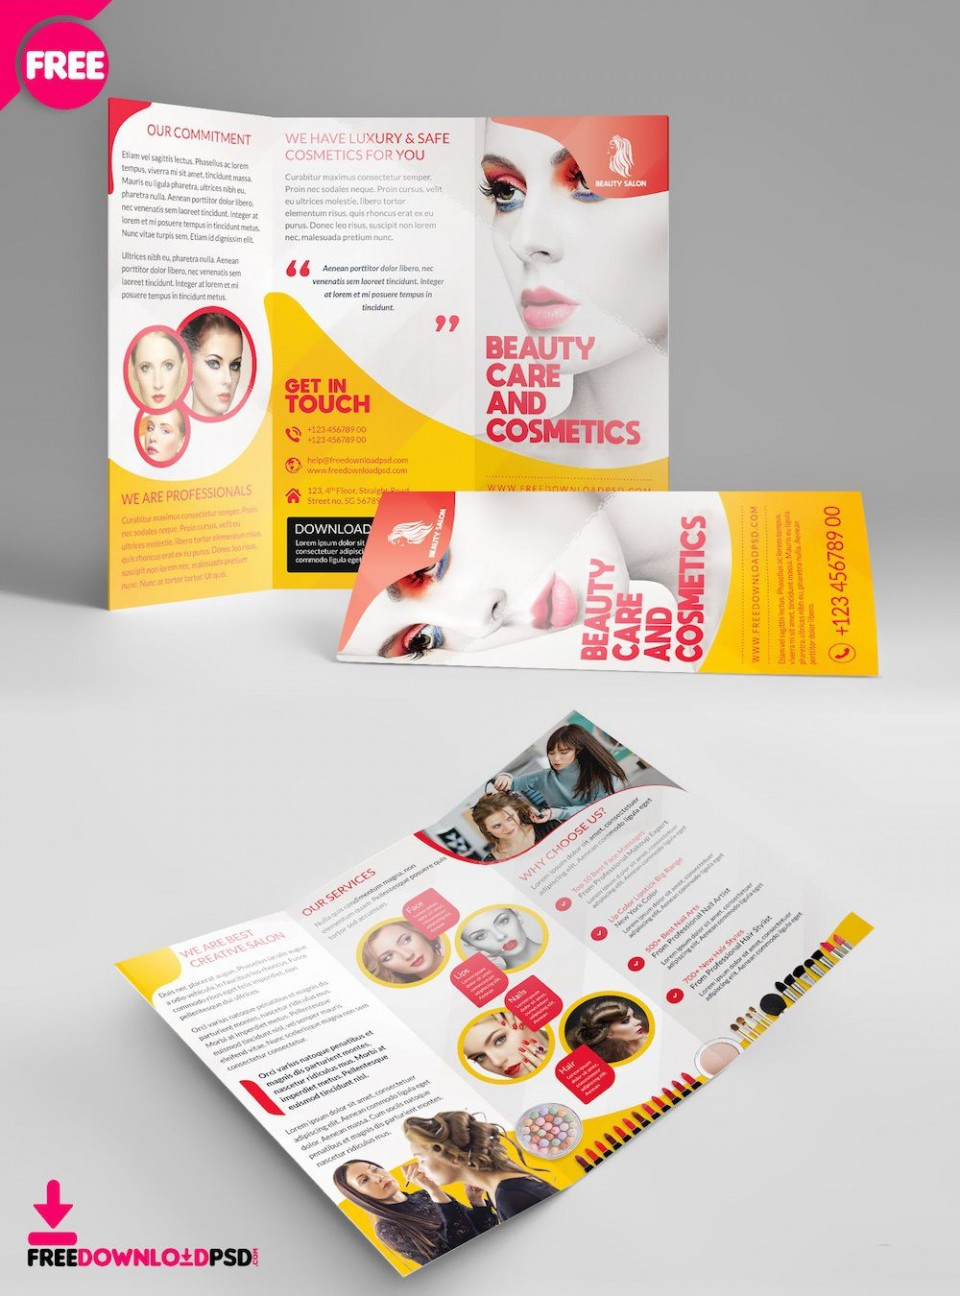 003 Rare Free Brochure Template Psd File Front And Back Inspiration 960